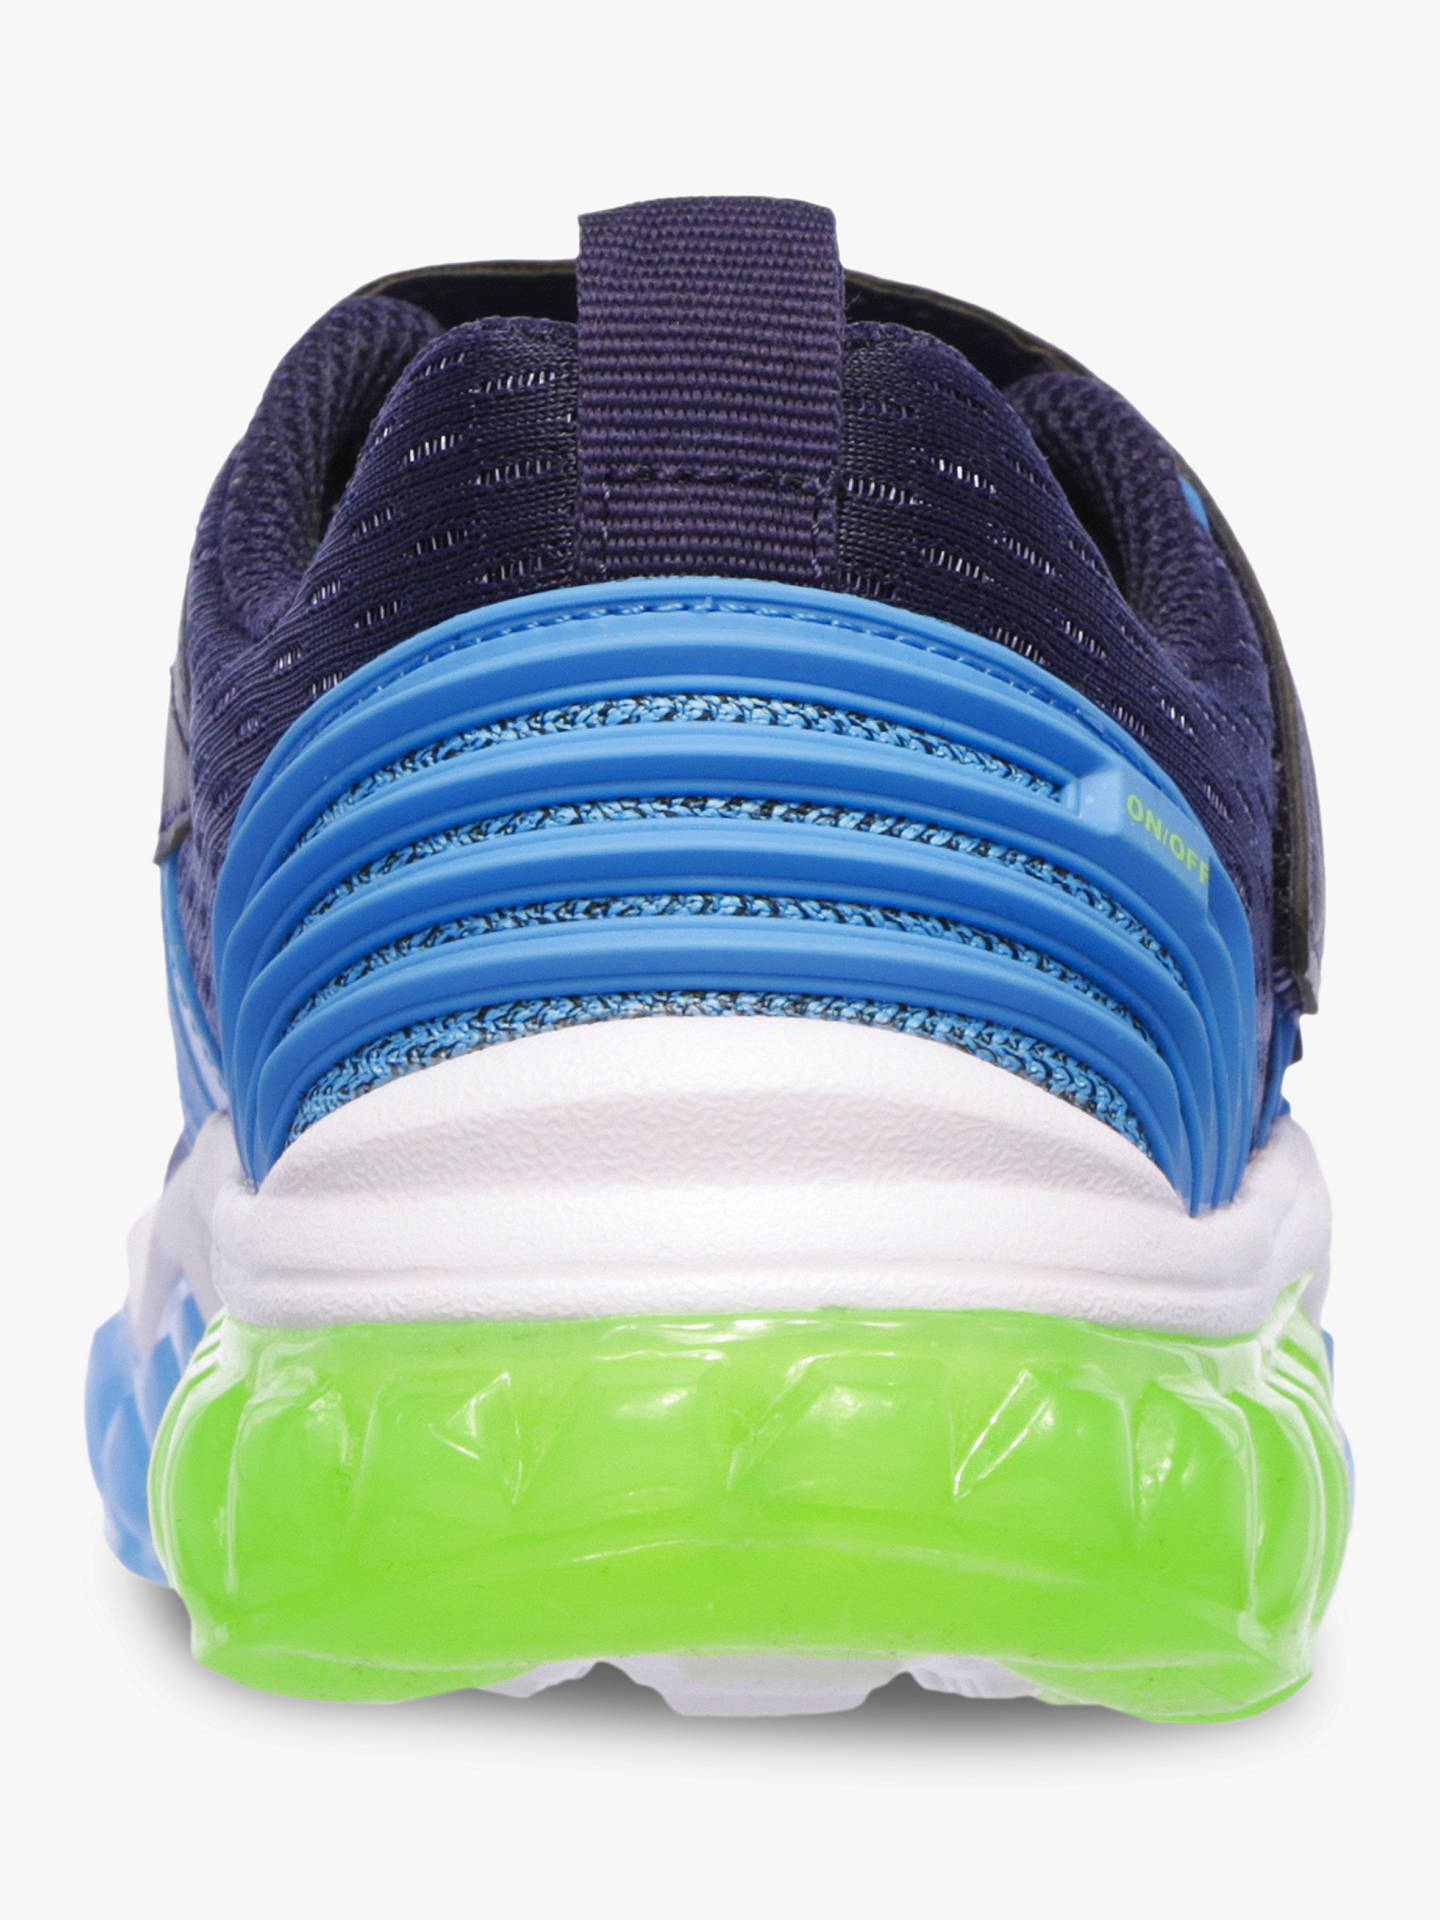 Buy Skechers Children's S Lights Rapid Flash Trainers, Blue, 34 Online at johnlewis.com